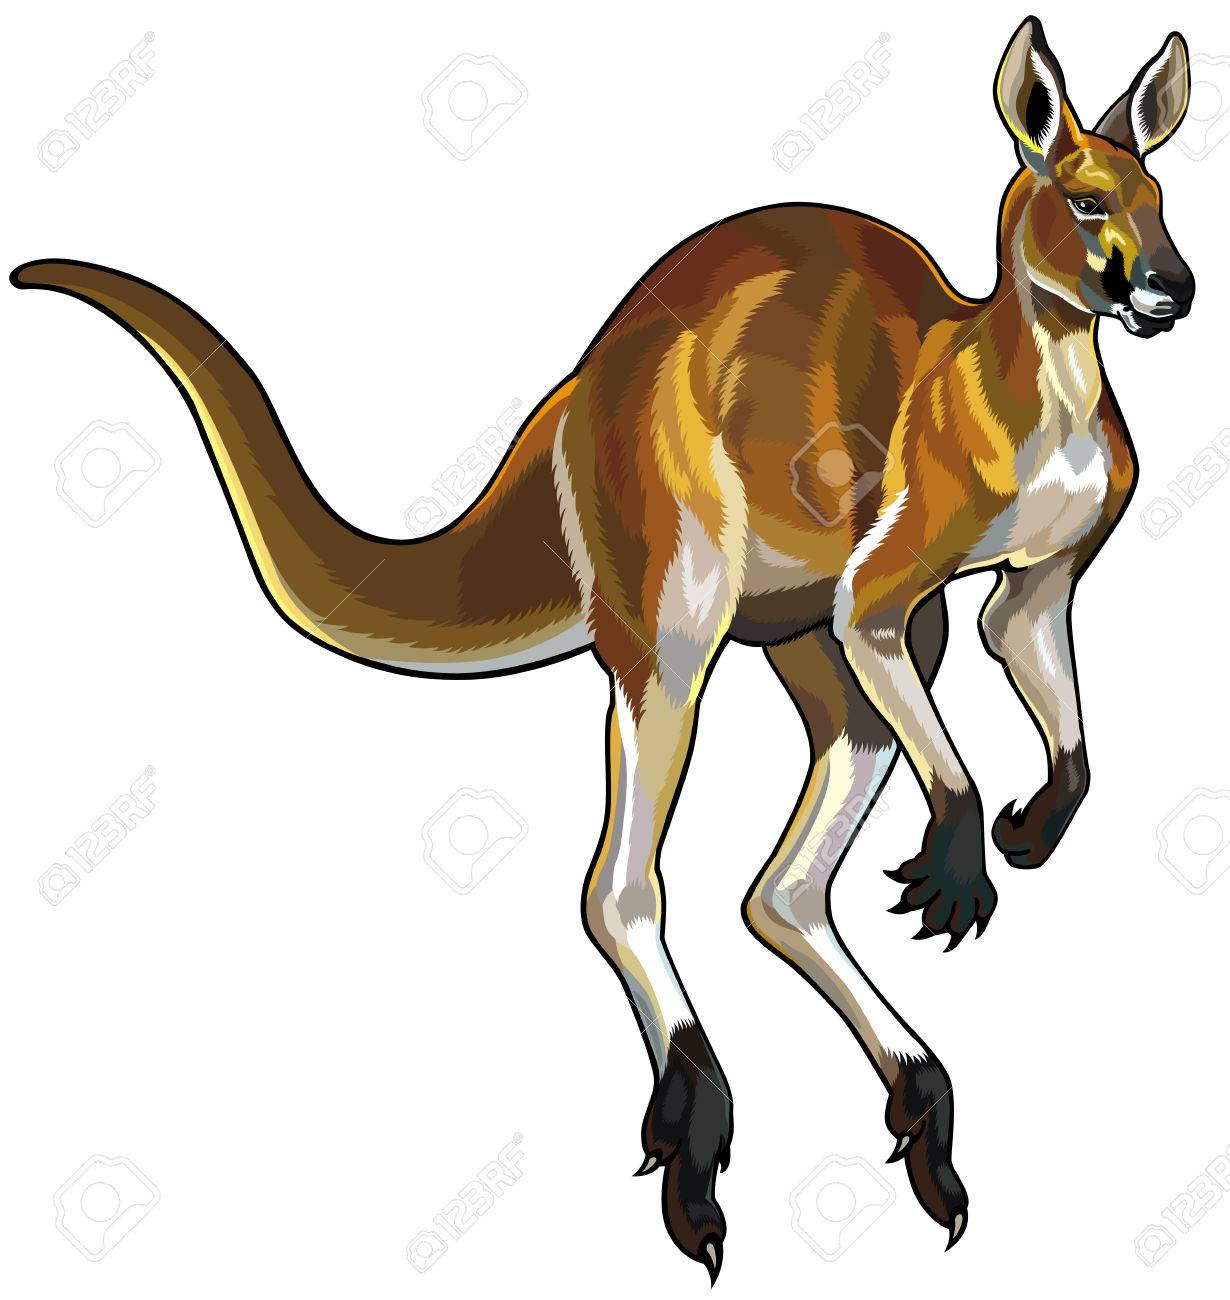 hight resolution of red kangaroo i motion isolated on white background stock vector 23013589